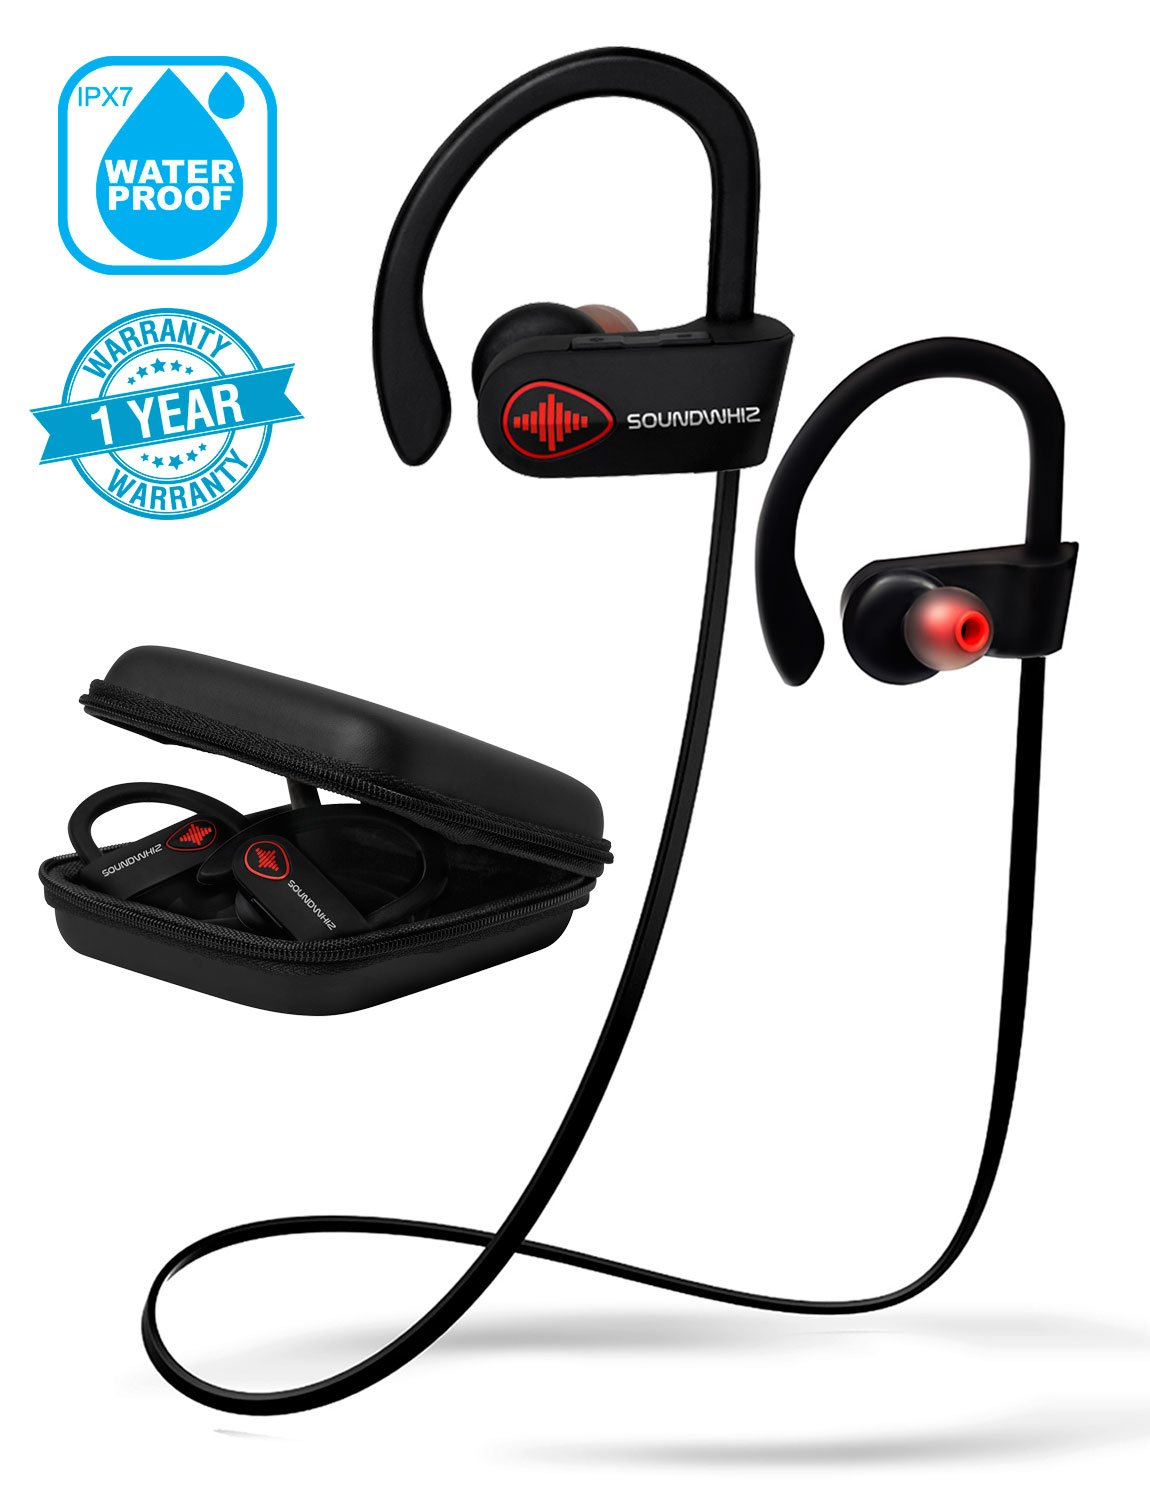 Best Bluetooth Earbuds 2020 For Running Amazon.com: Wireless Bluetooth Running Headphones   SoundWhiz